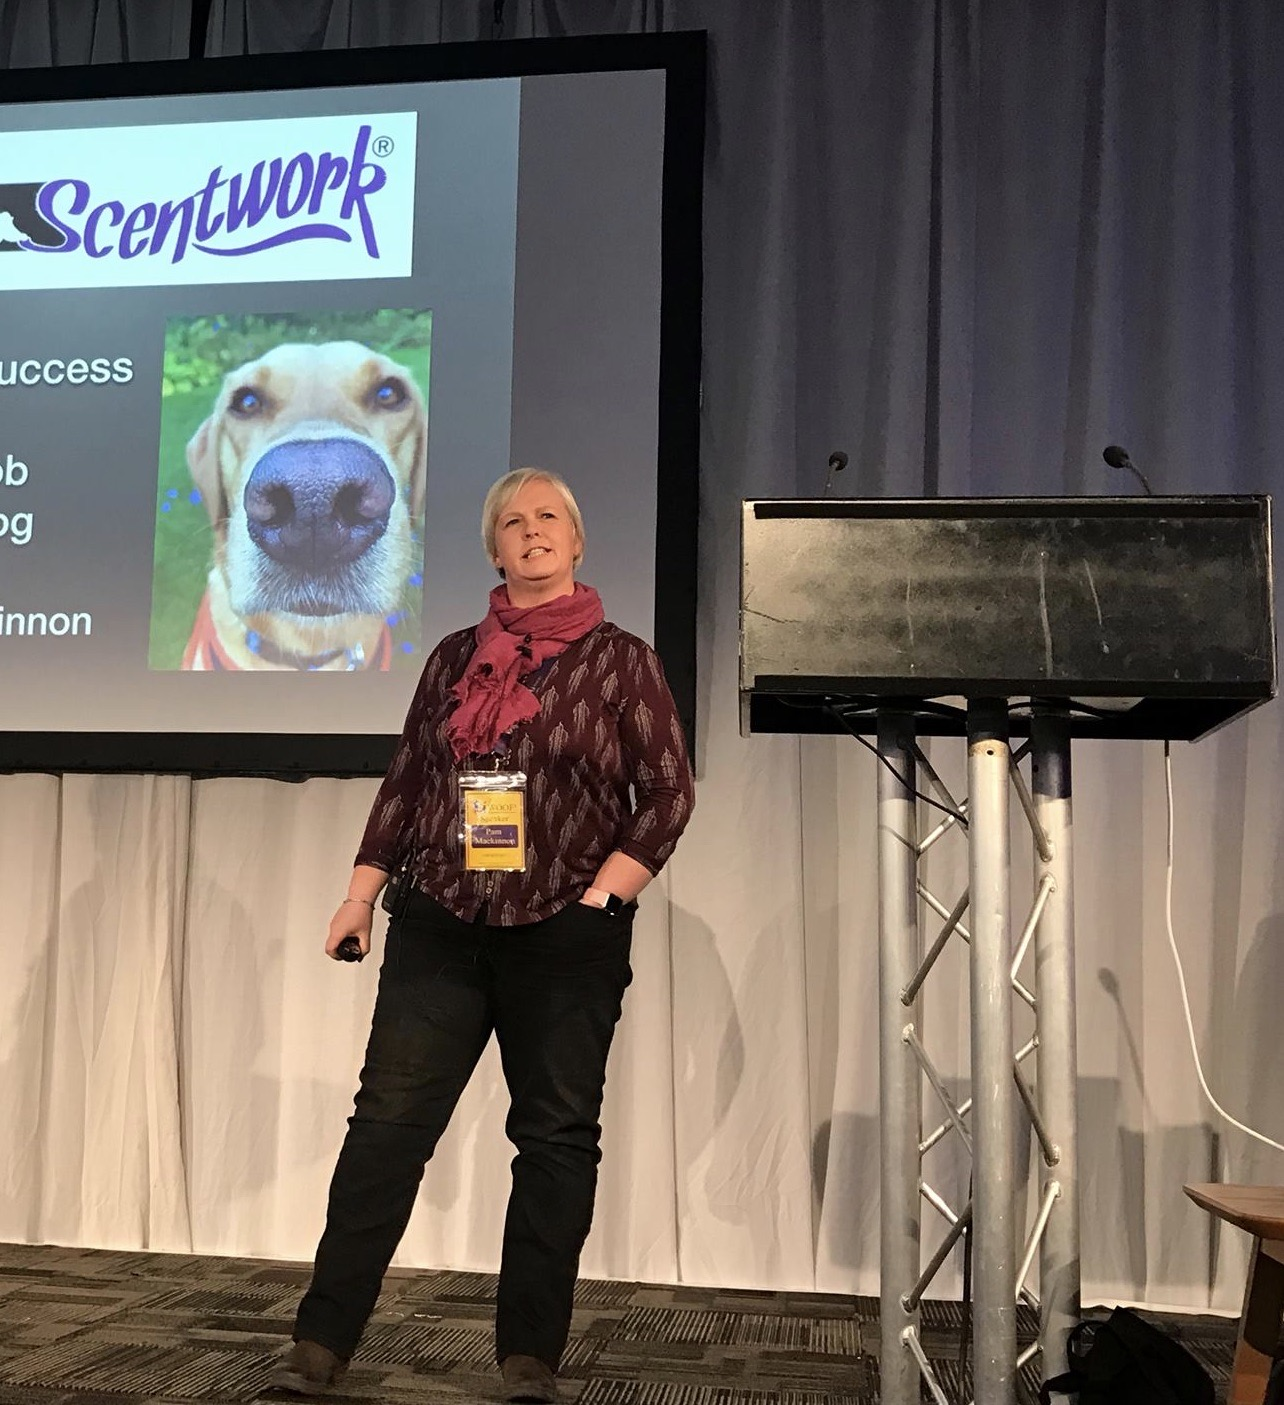 Pam Mackinnon speaking at Woof conf